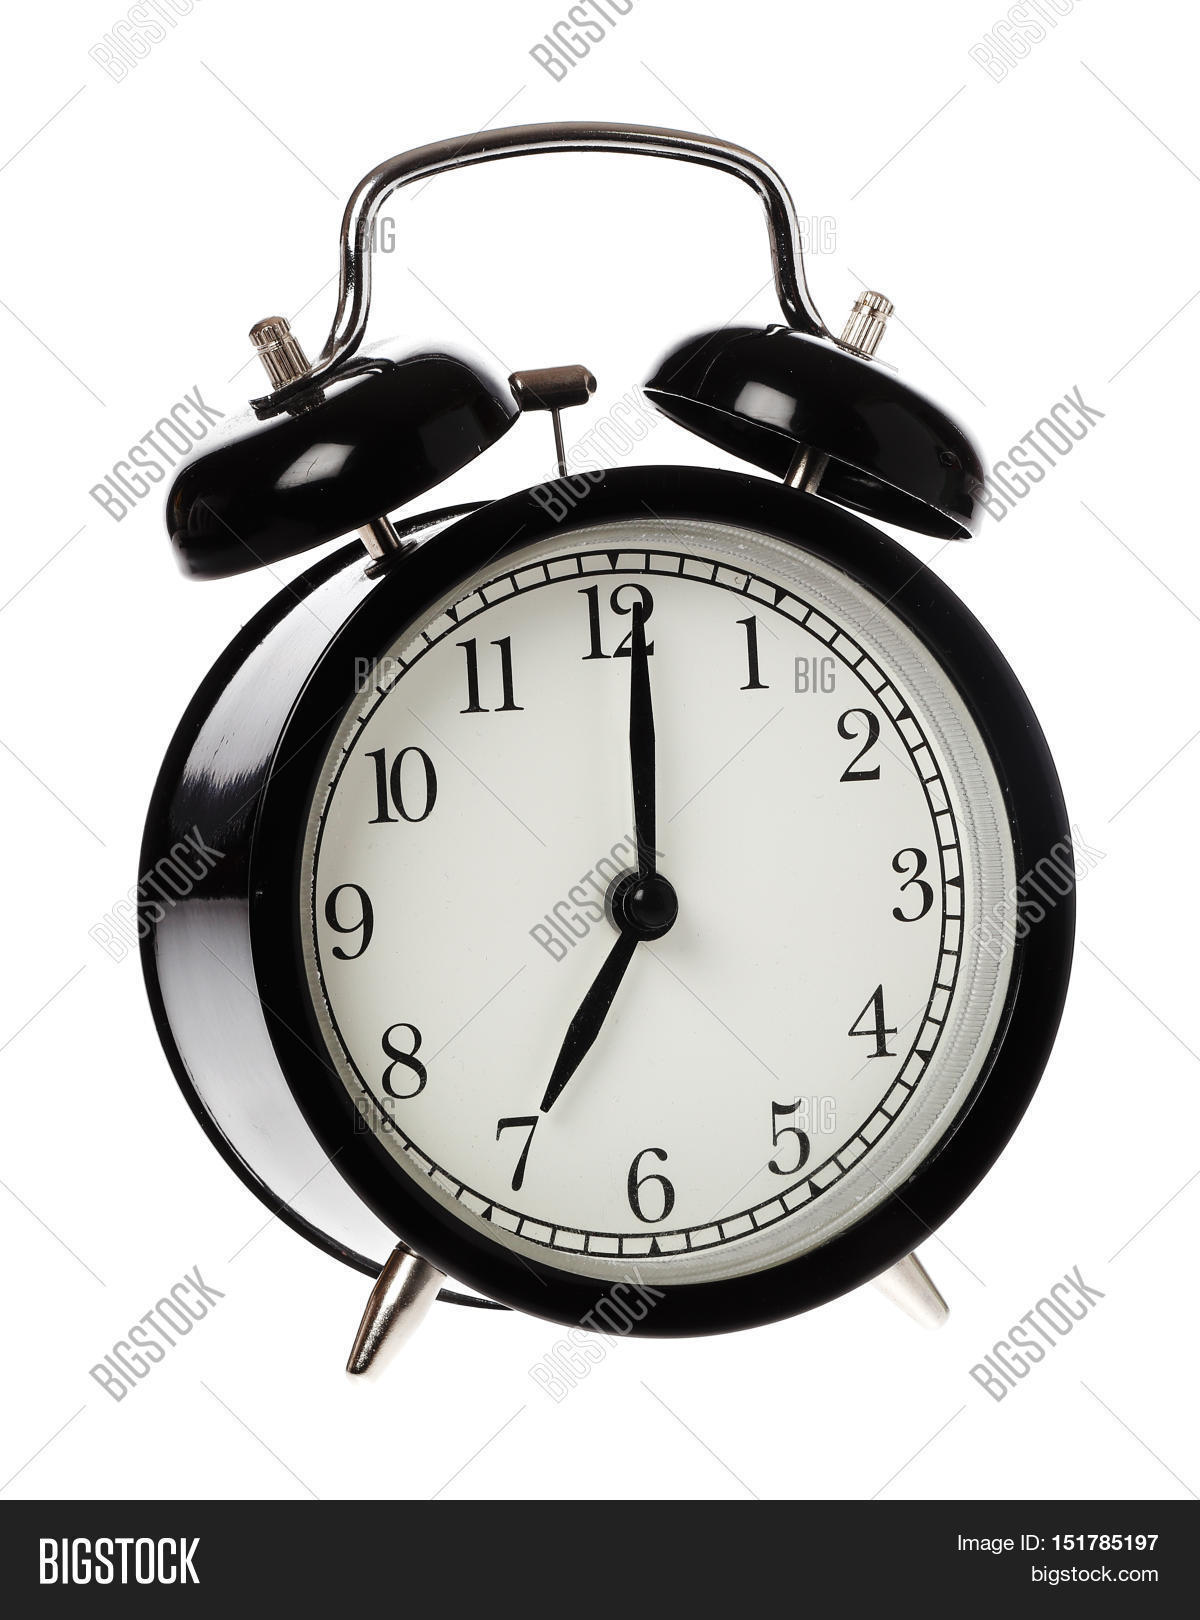 One Black Alaram Clock Image & Photo (Free Trial) | Bigstock